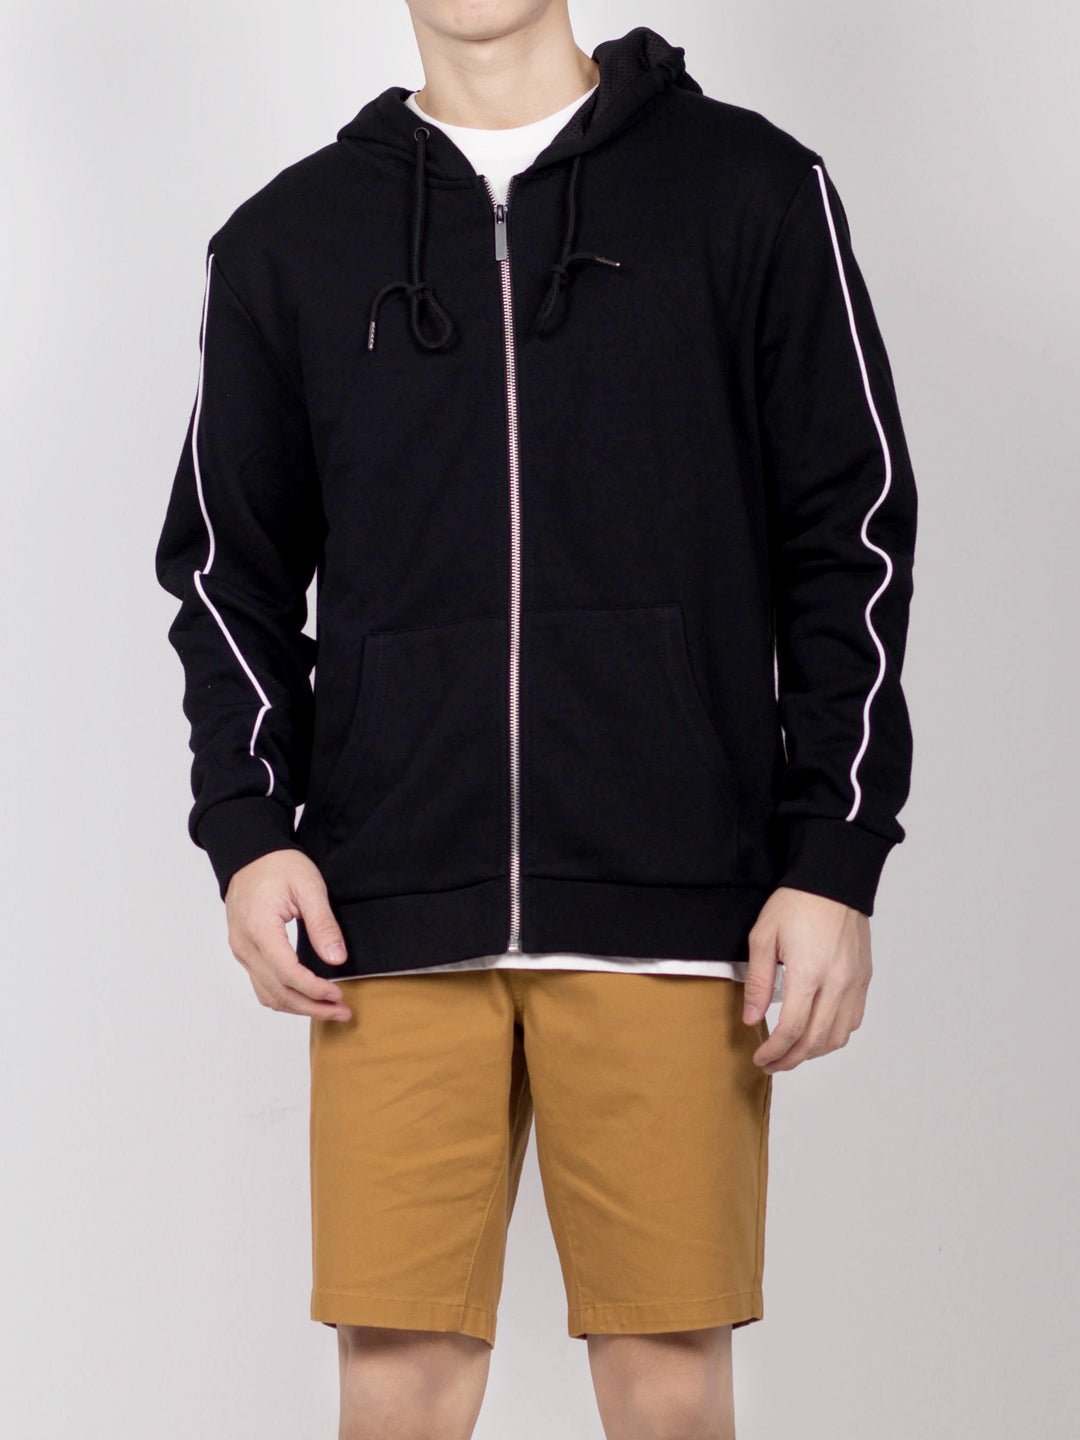 Men Stripe Hoodies Jacket  - Black - CPH20H2661